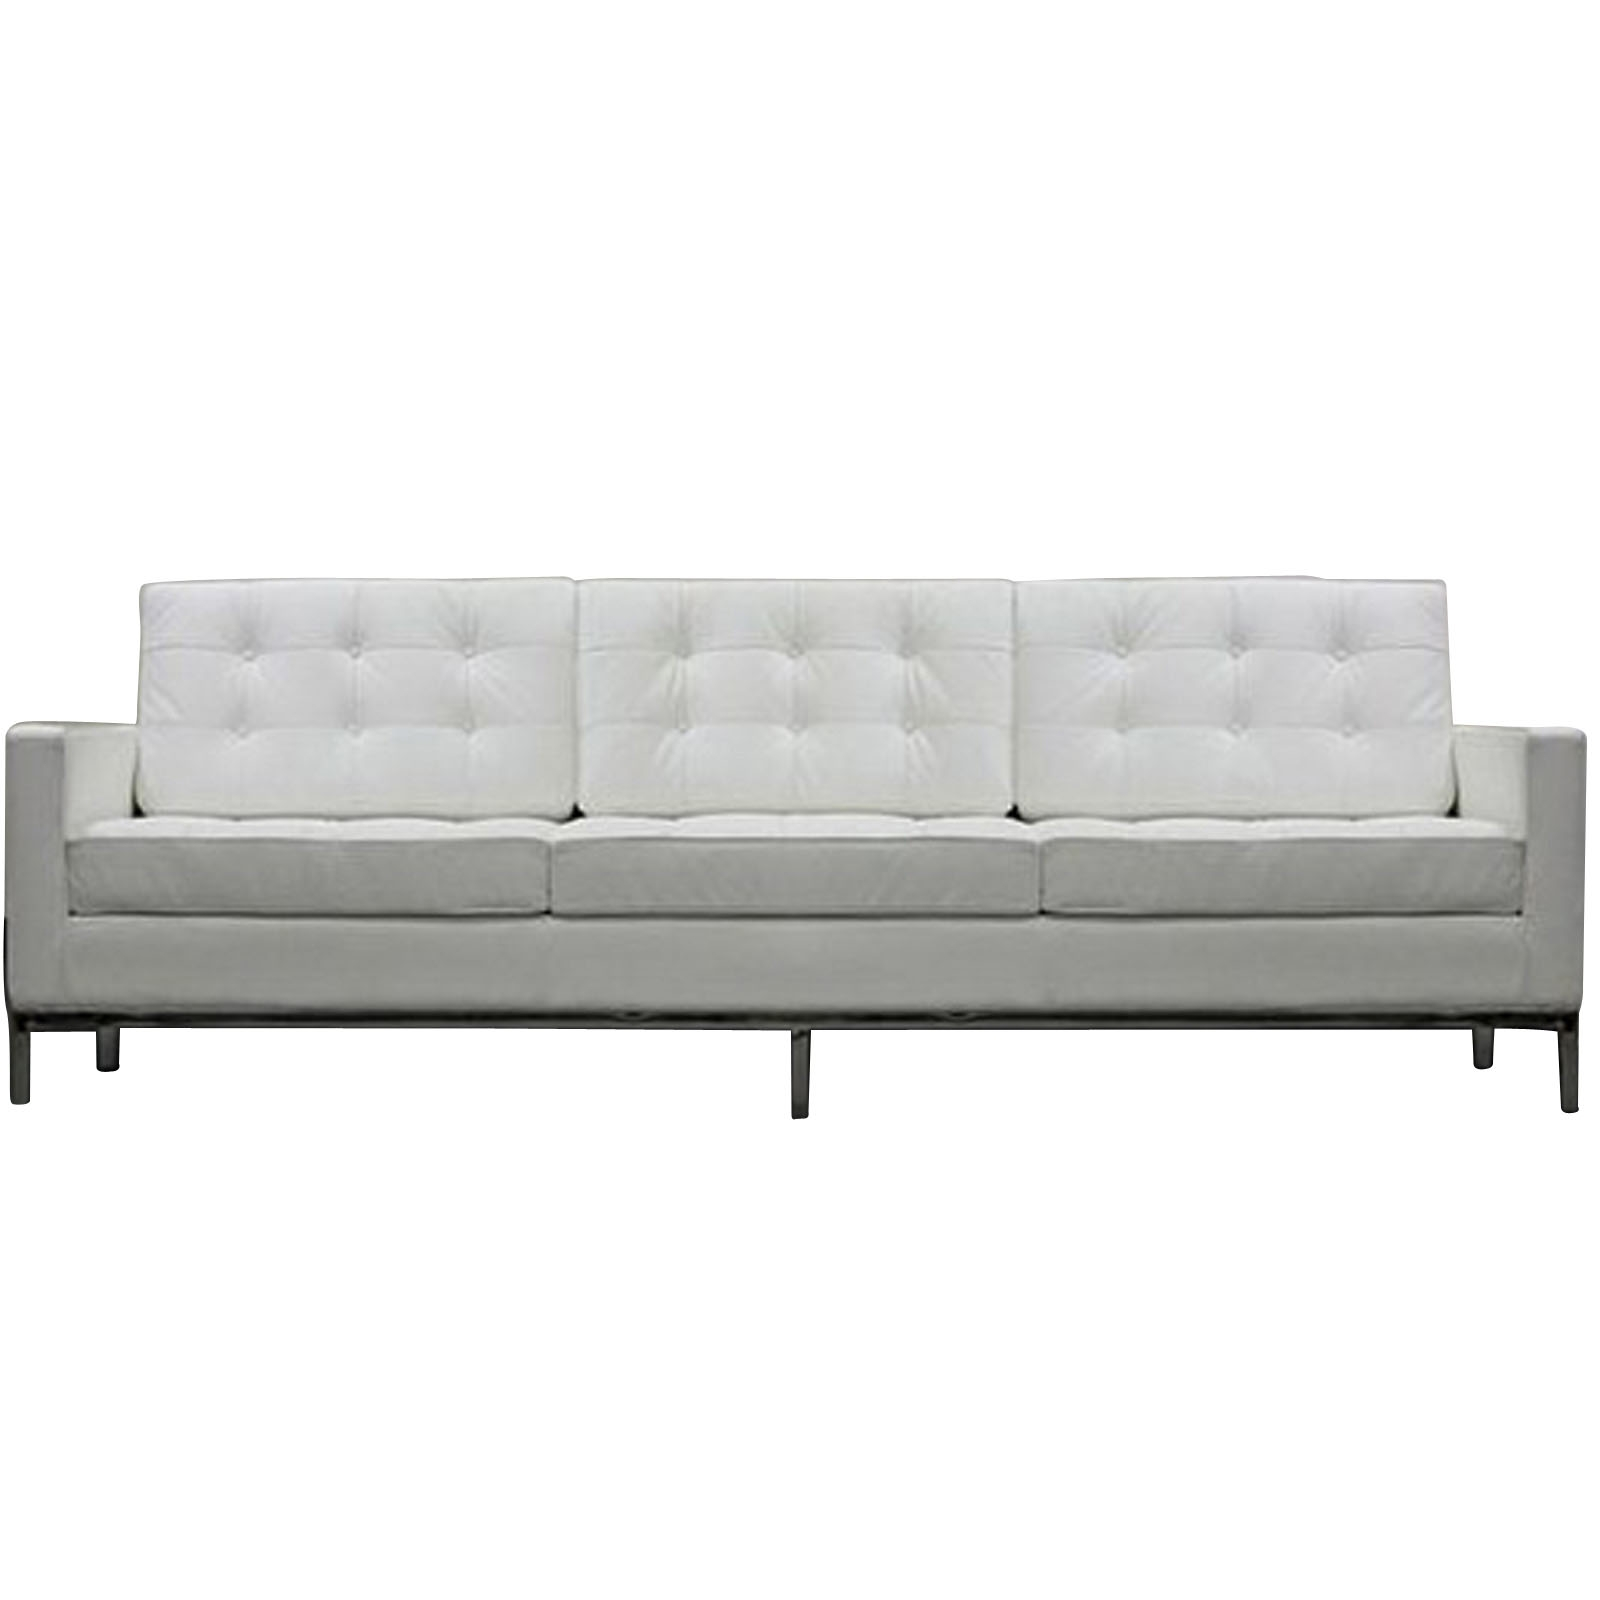 Florence Knoll Style Sofa Couch Leather For Florence Knoll Leather Sofas (View 10 of 15)